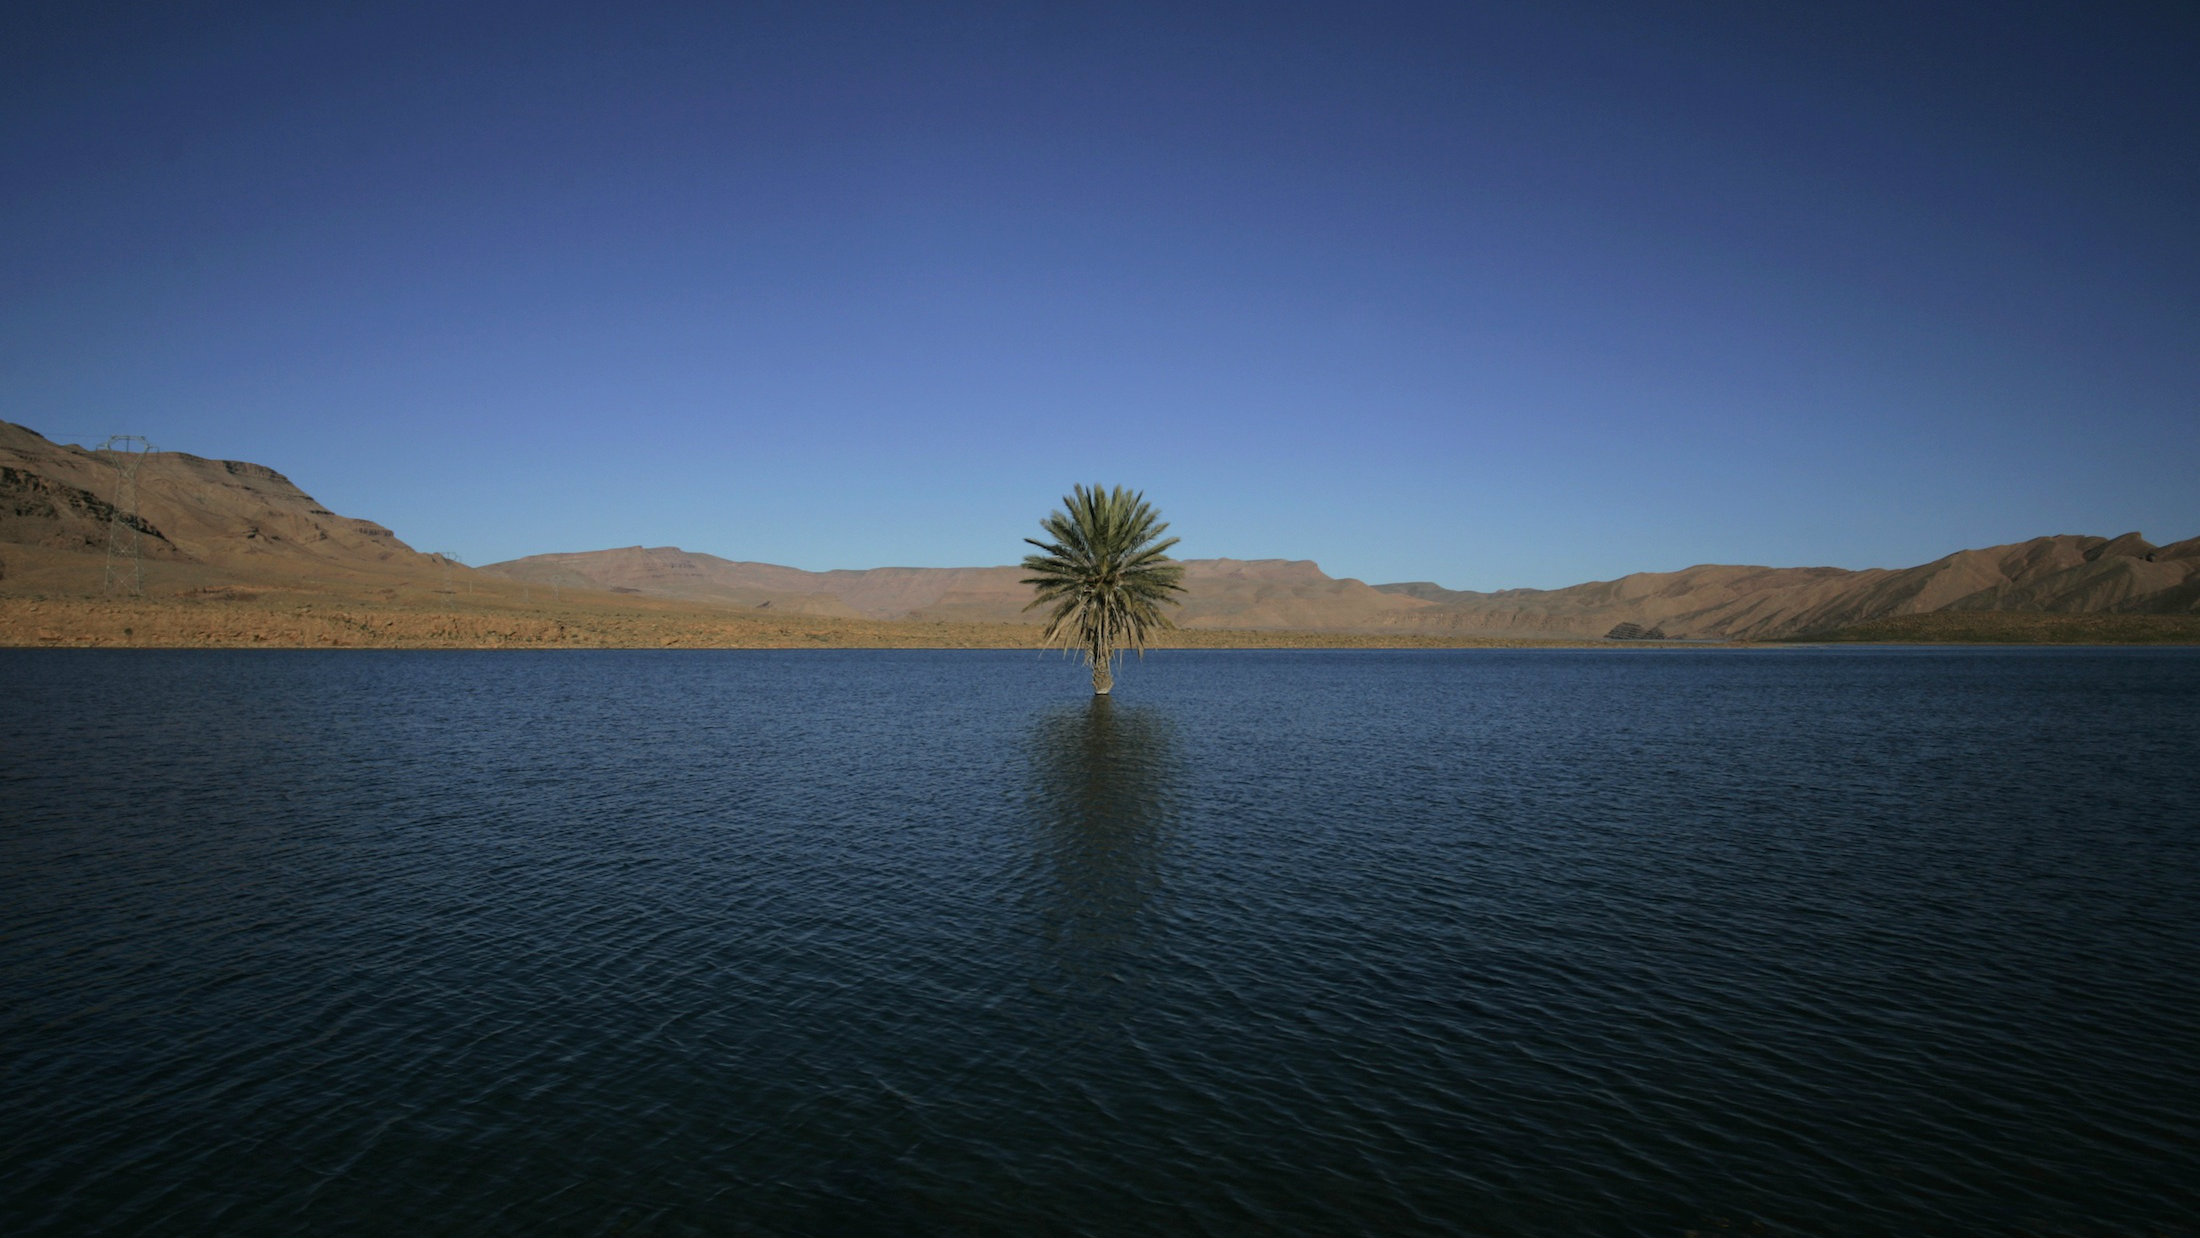 A palm tree grows in the Errachidia reservoir near the Ziz oasis in the north of the Sahara desert.